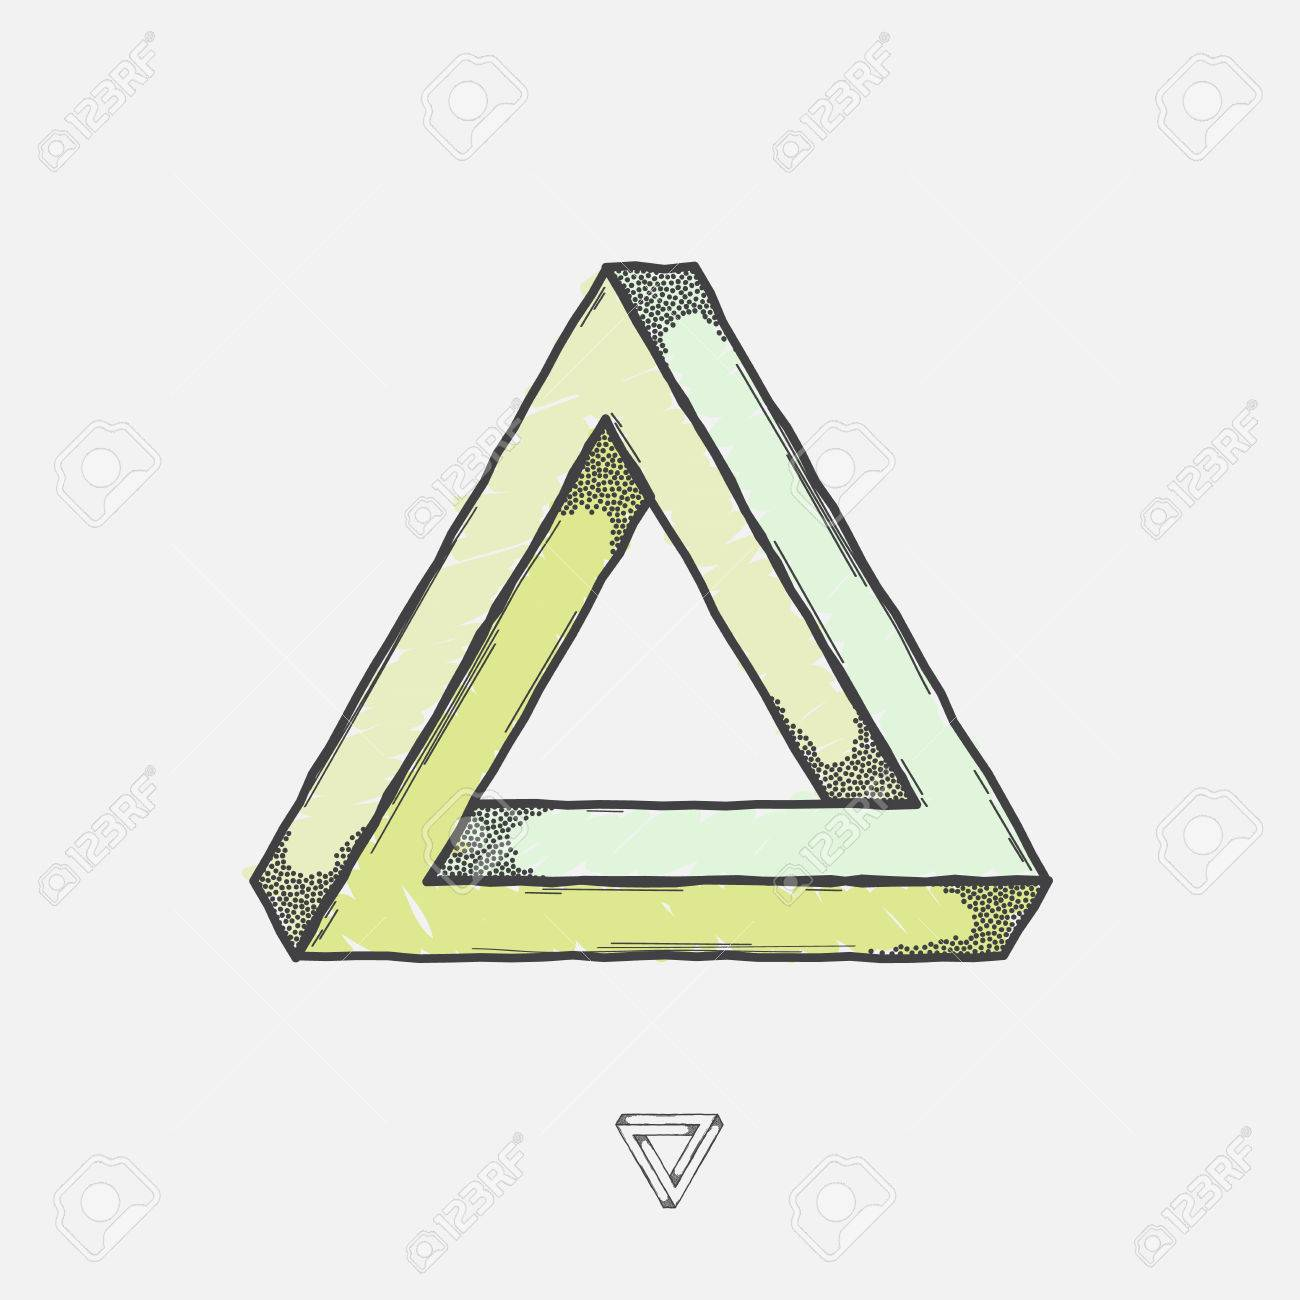 Penrose triangle: paper hands 78